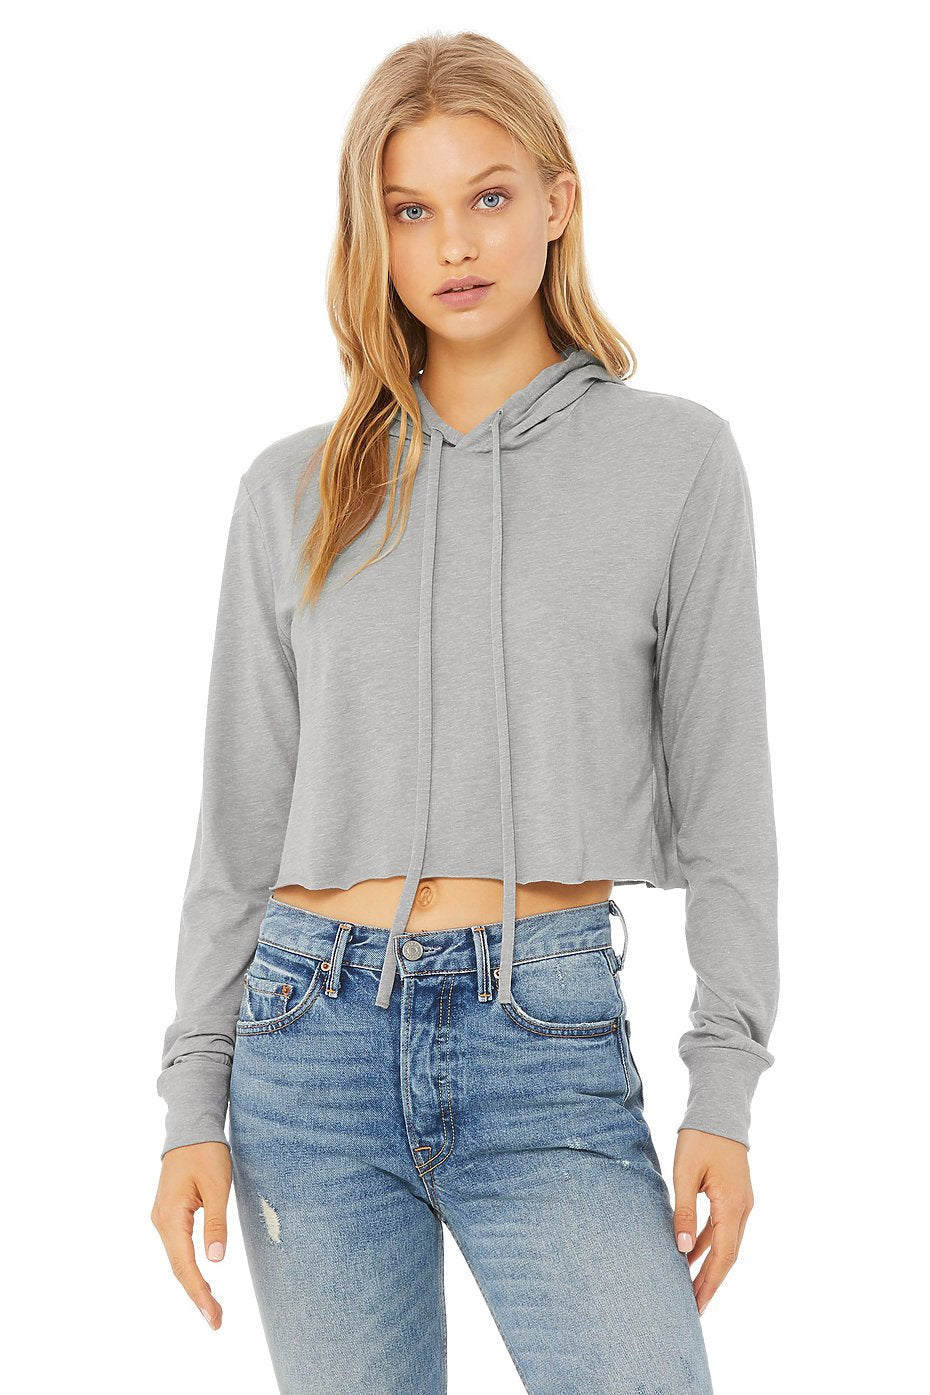 8512 Bella + Canvas Ladies' Cropped Long Sleeve Hooded T-Shirt - Customized